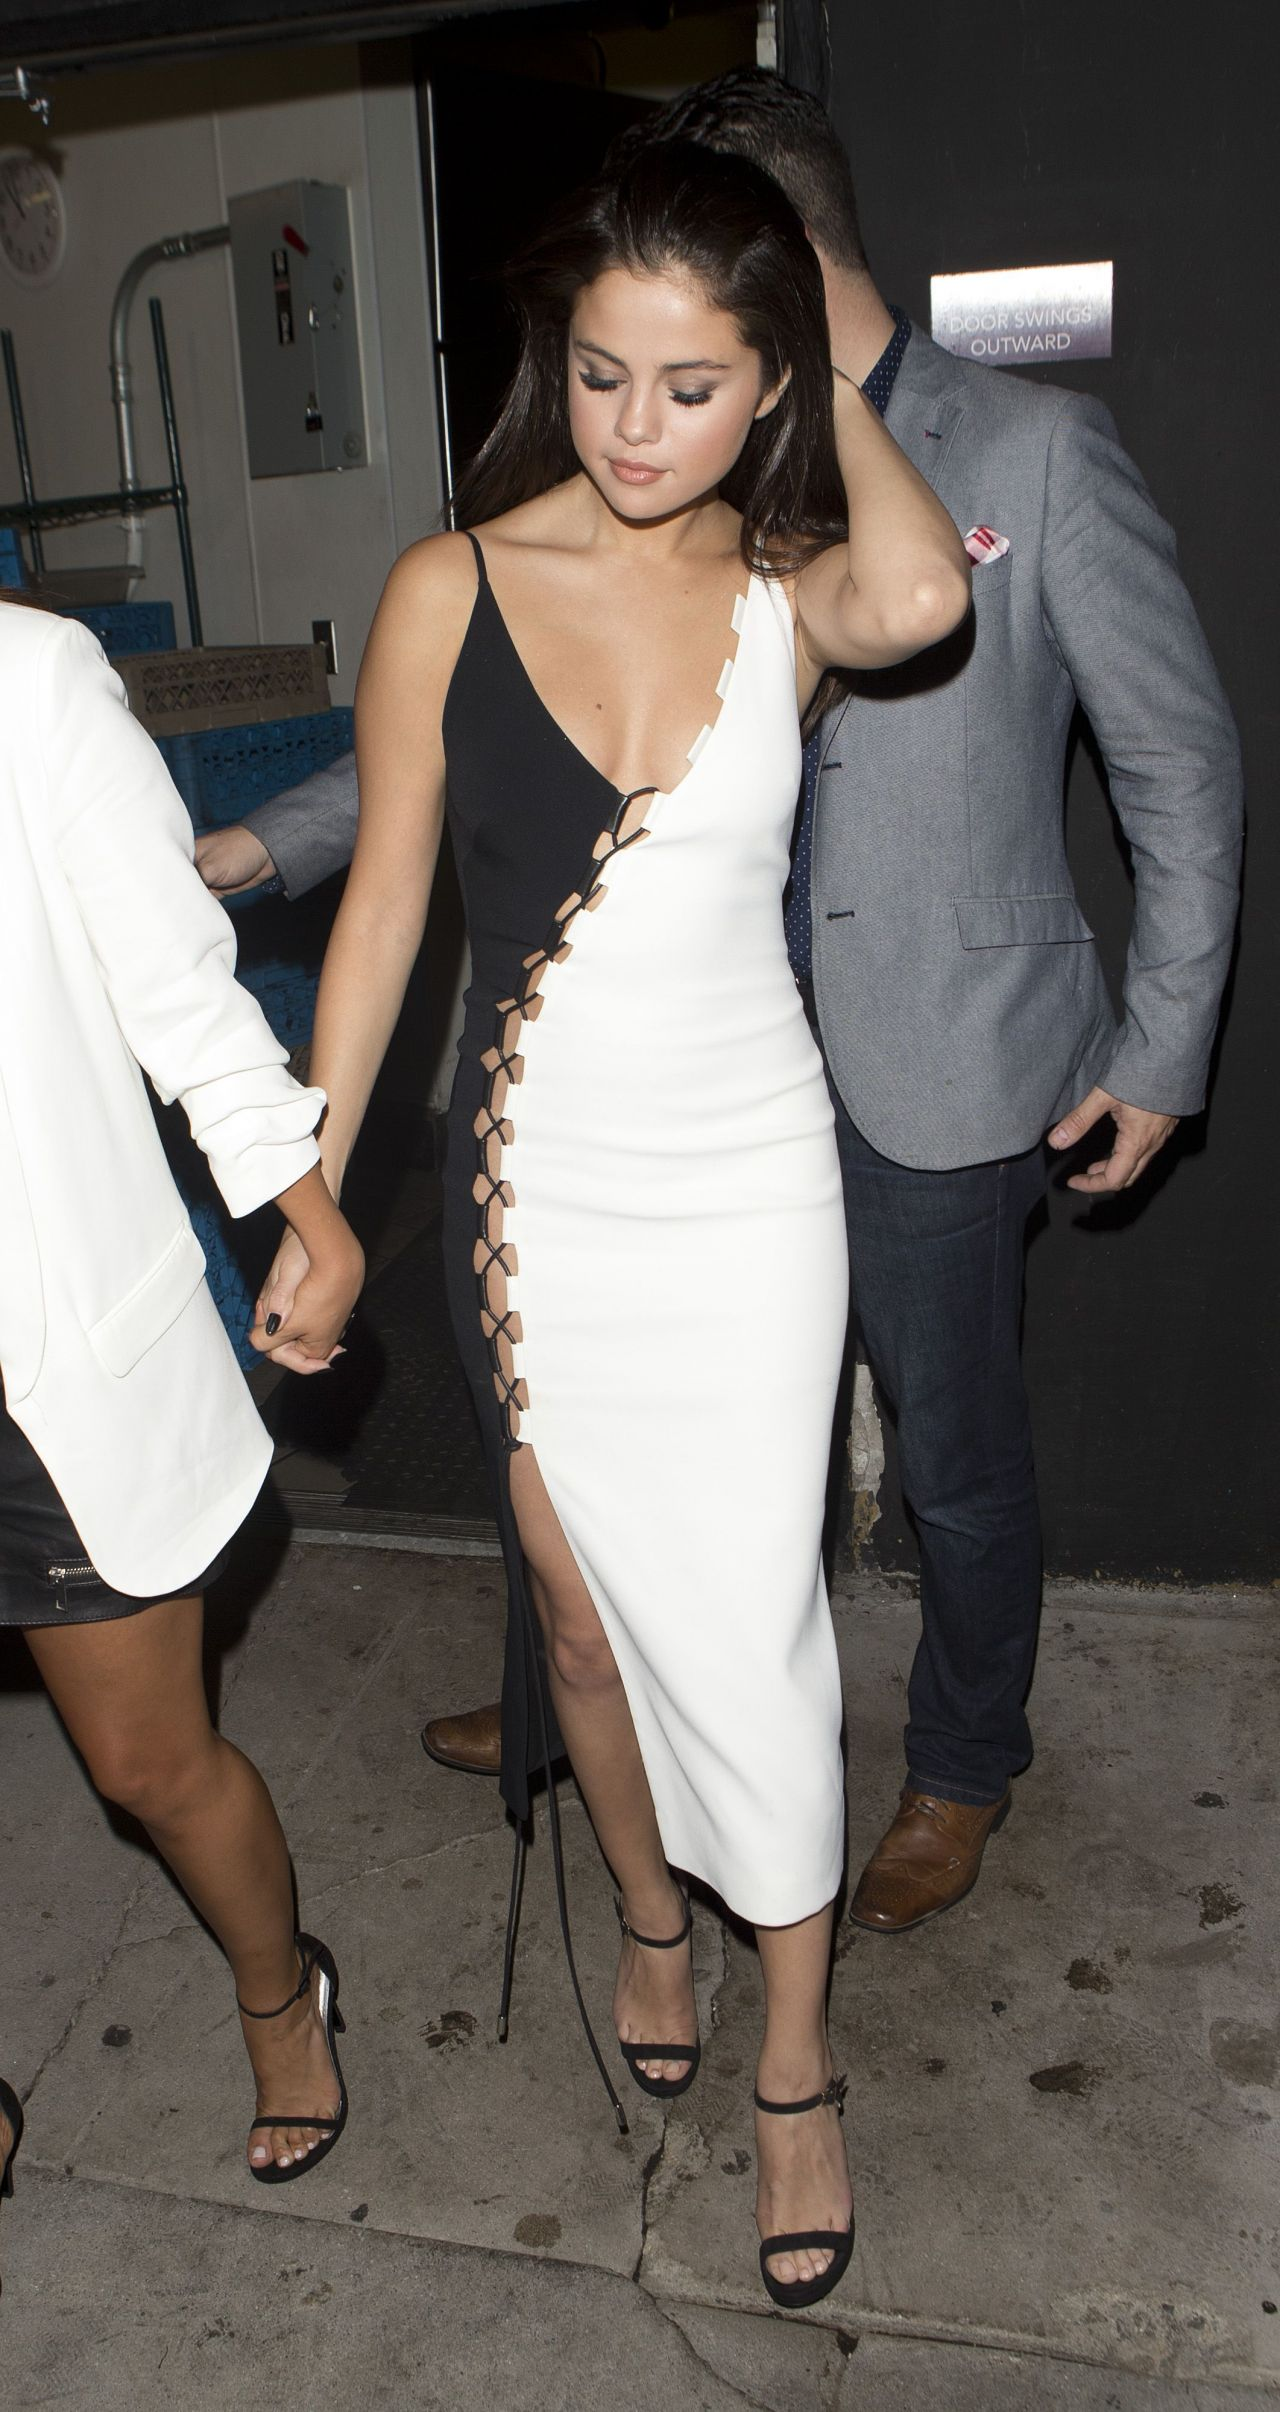 selena-gomez-night-out-style-leaving-the-nice-guy-bar-in-west-hollywood-august-2015_11